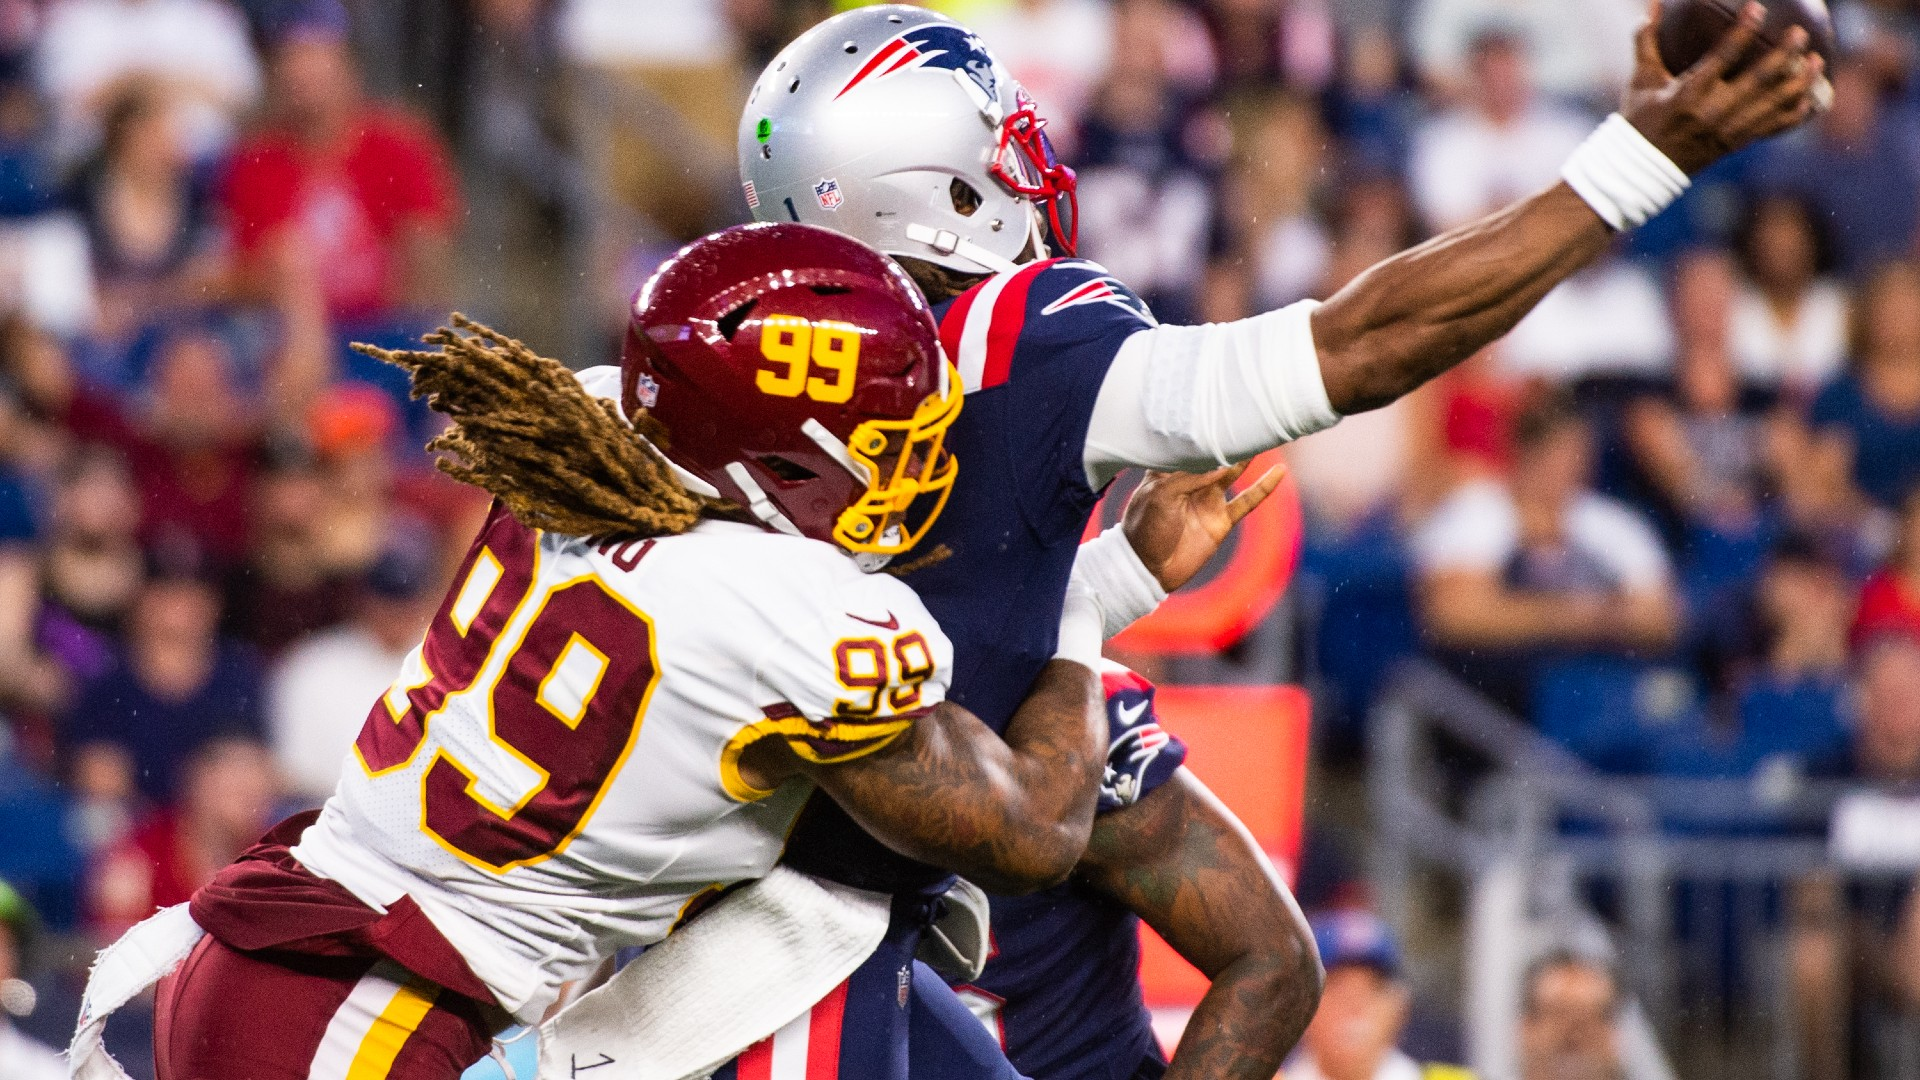 Washington's Chase Young sets Twitter ablaze with hit on Patriots' Cam Newton in preseason debut